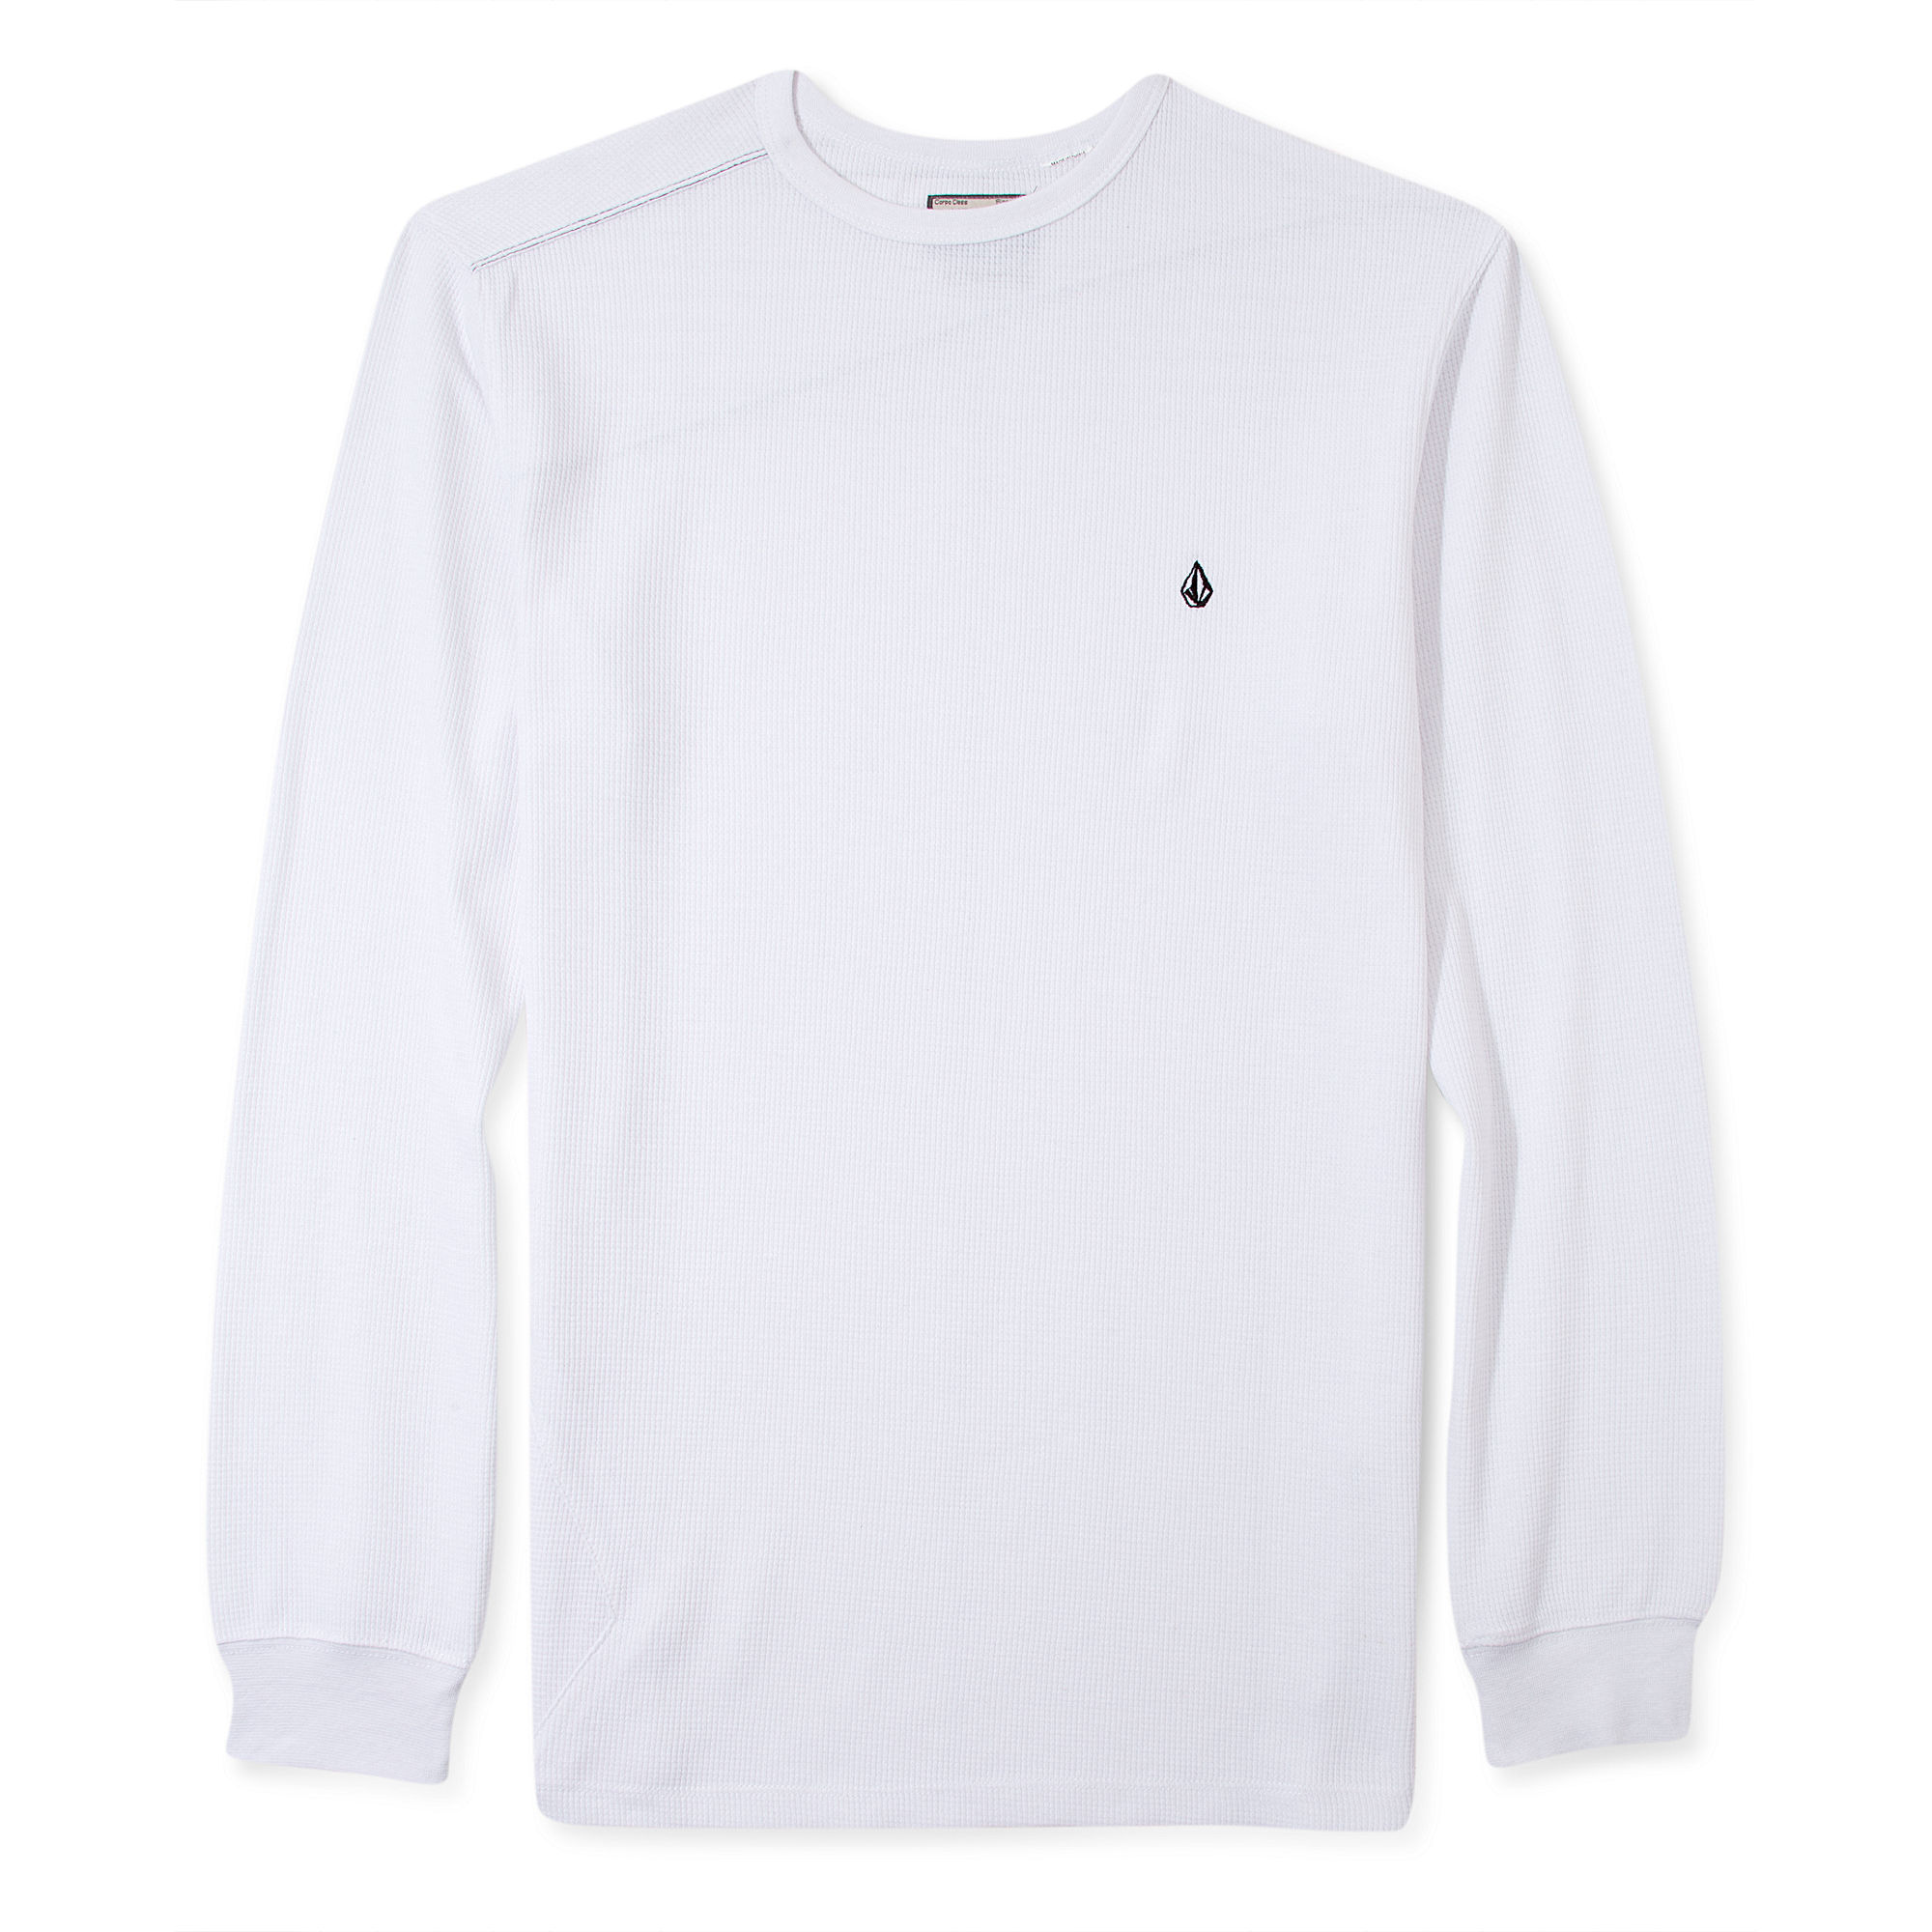 Volcom Schmasic Thermal Long Sleeve Shirt In White For Men